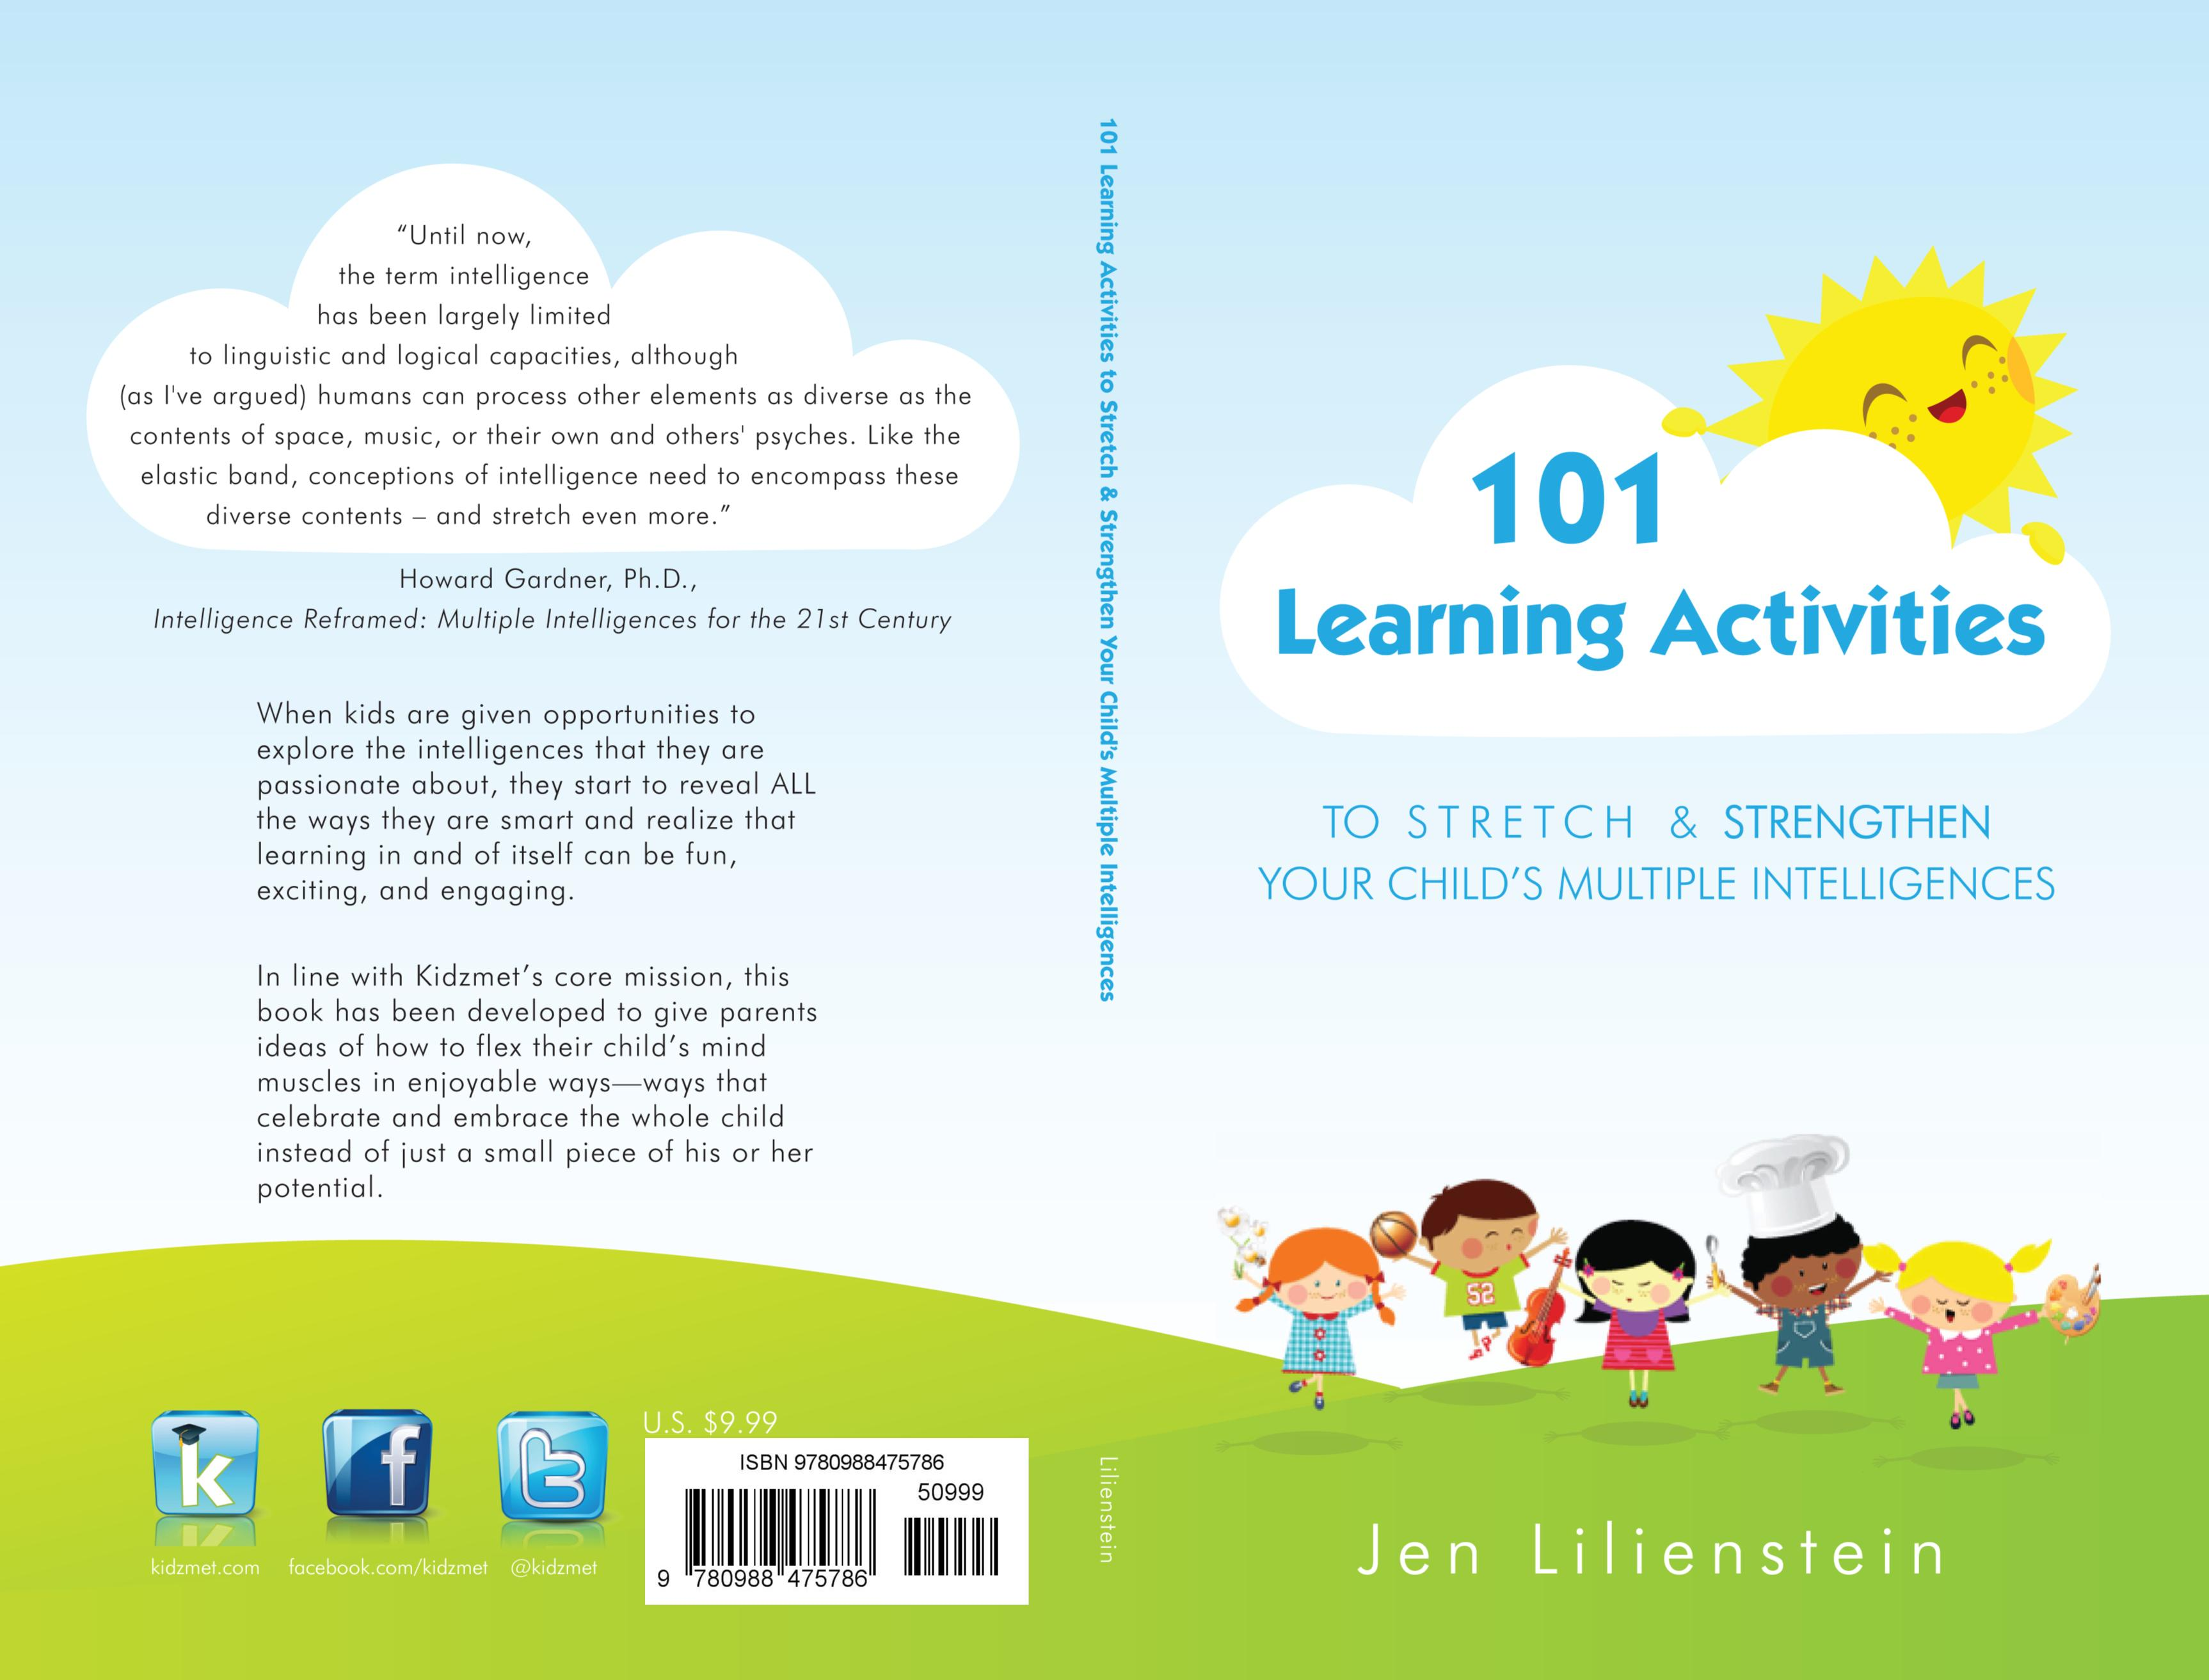 101 Learning Activities to Stretch & Strengthen Your Child